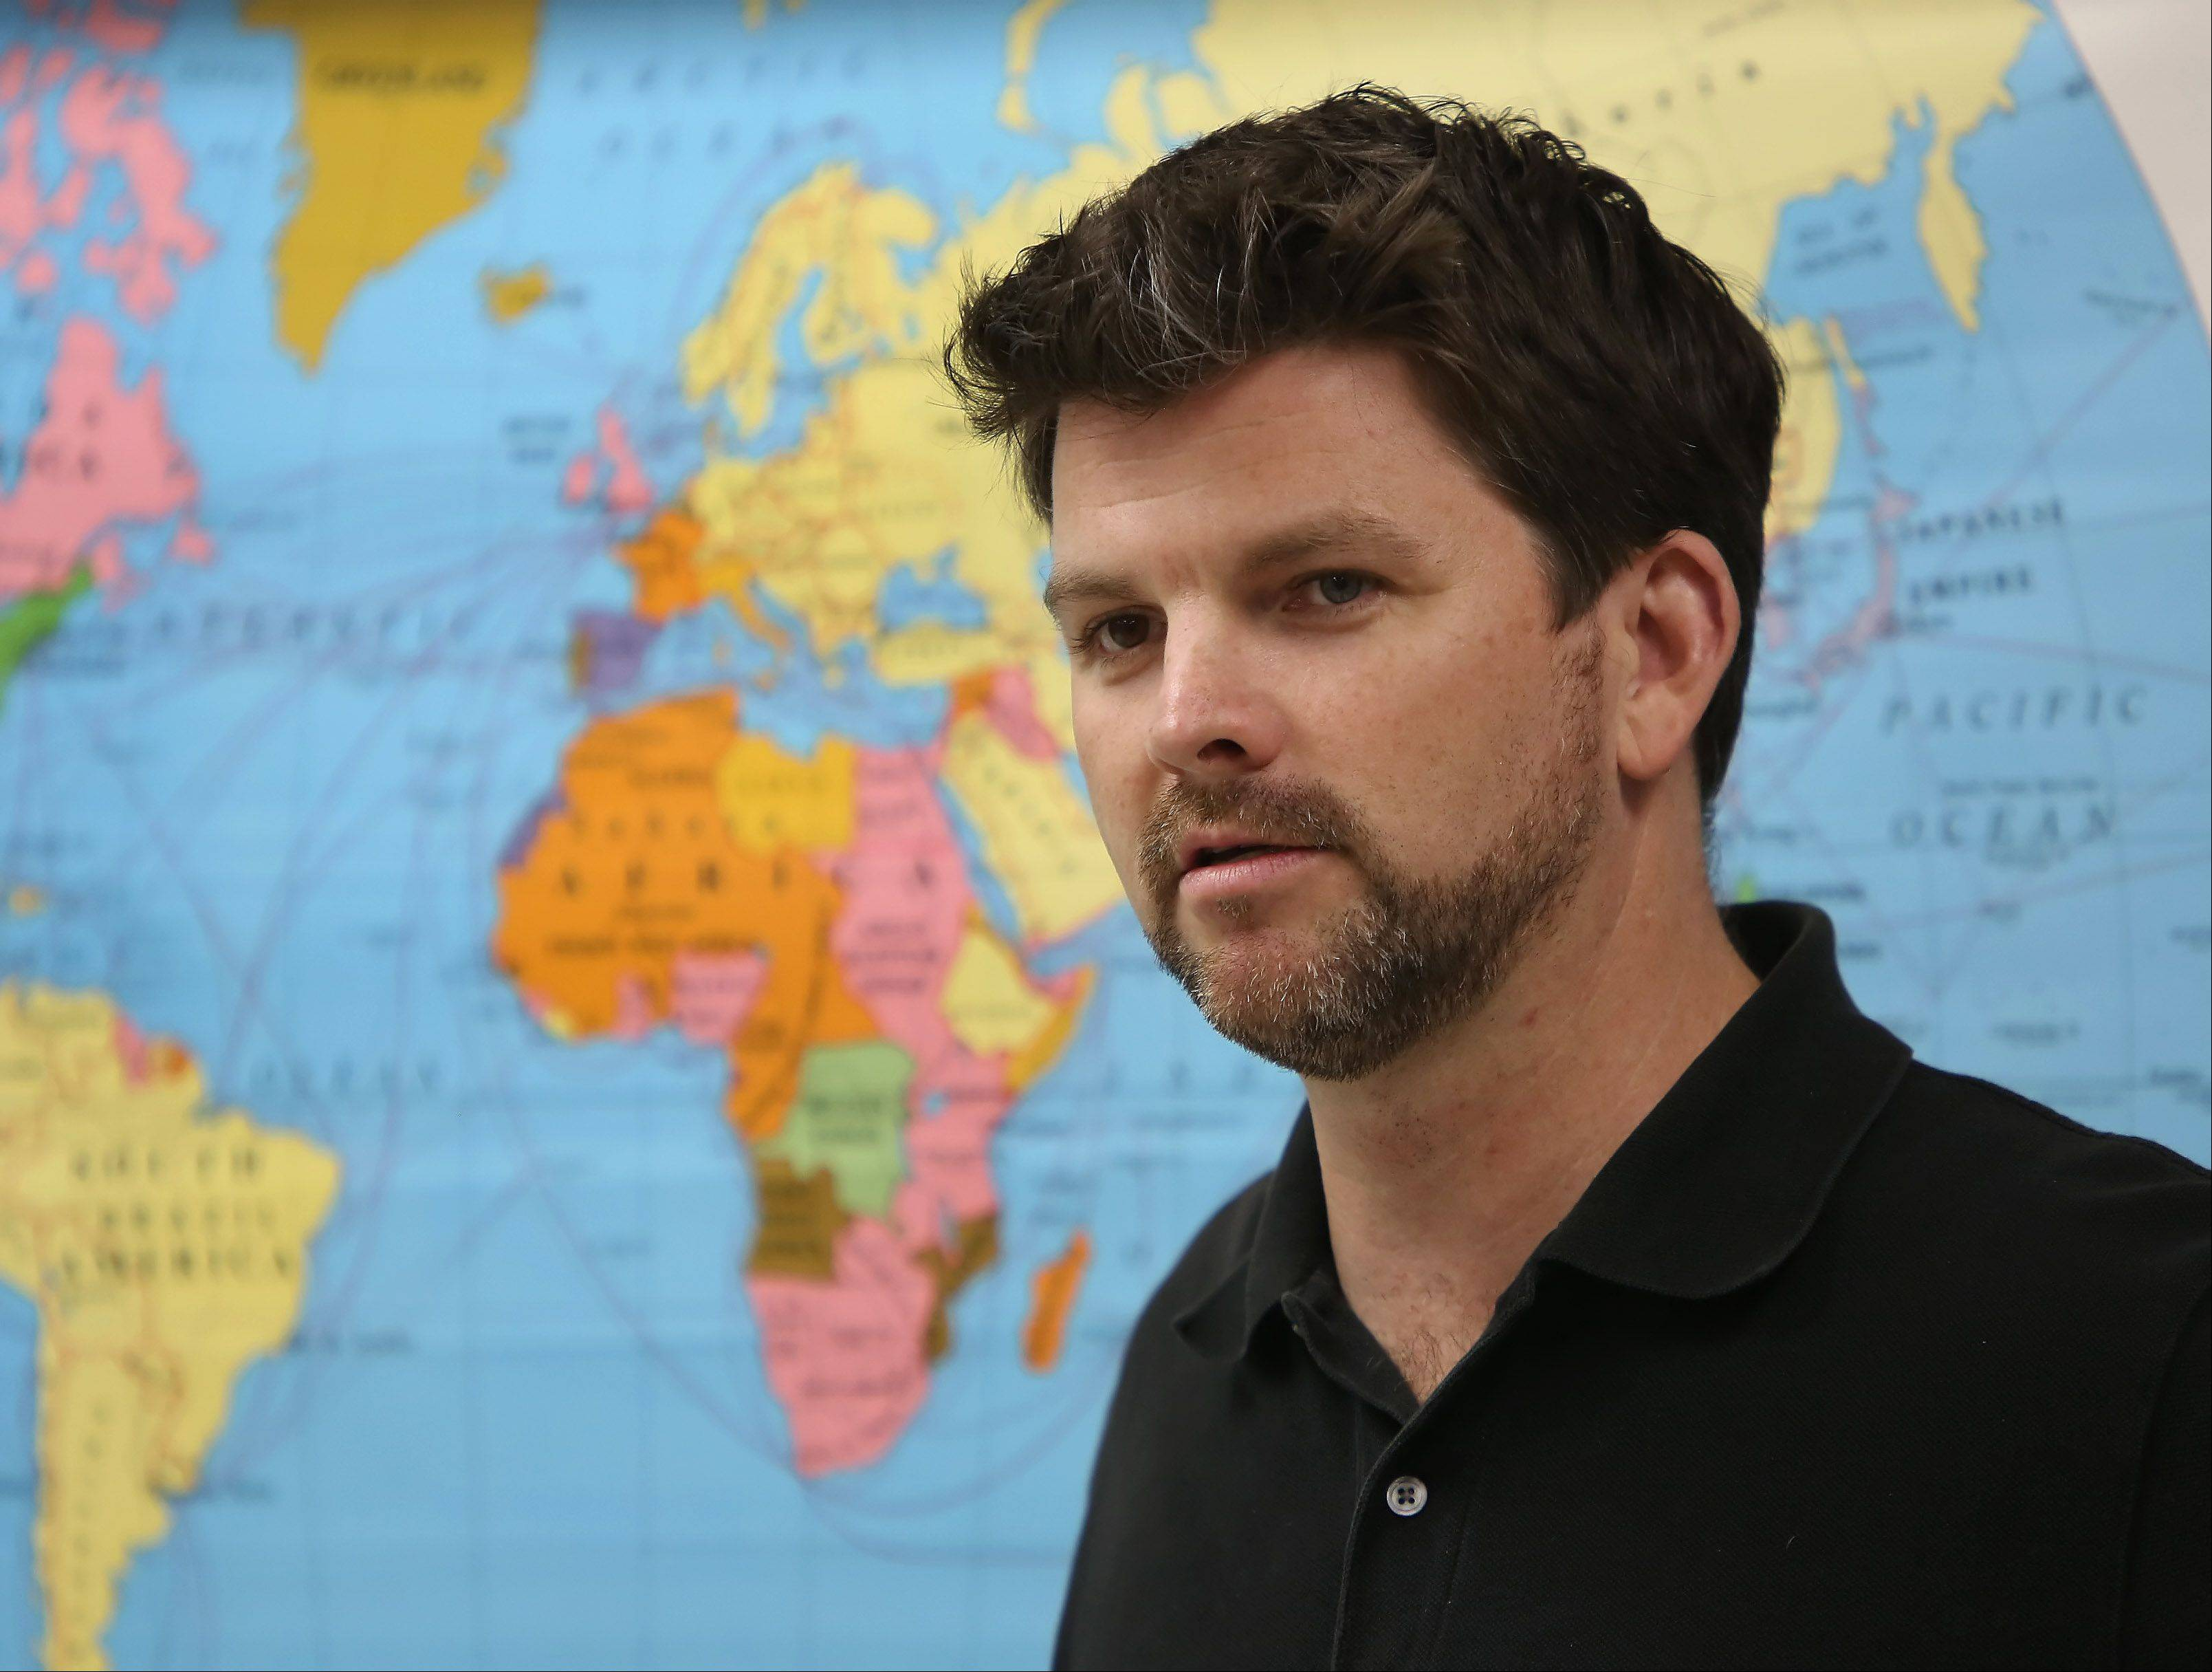 Mundelein High School teacher Neil McCarthy aims to make history relevant to today's students.